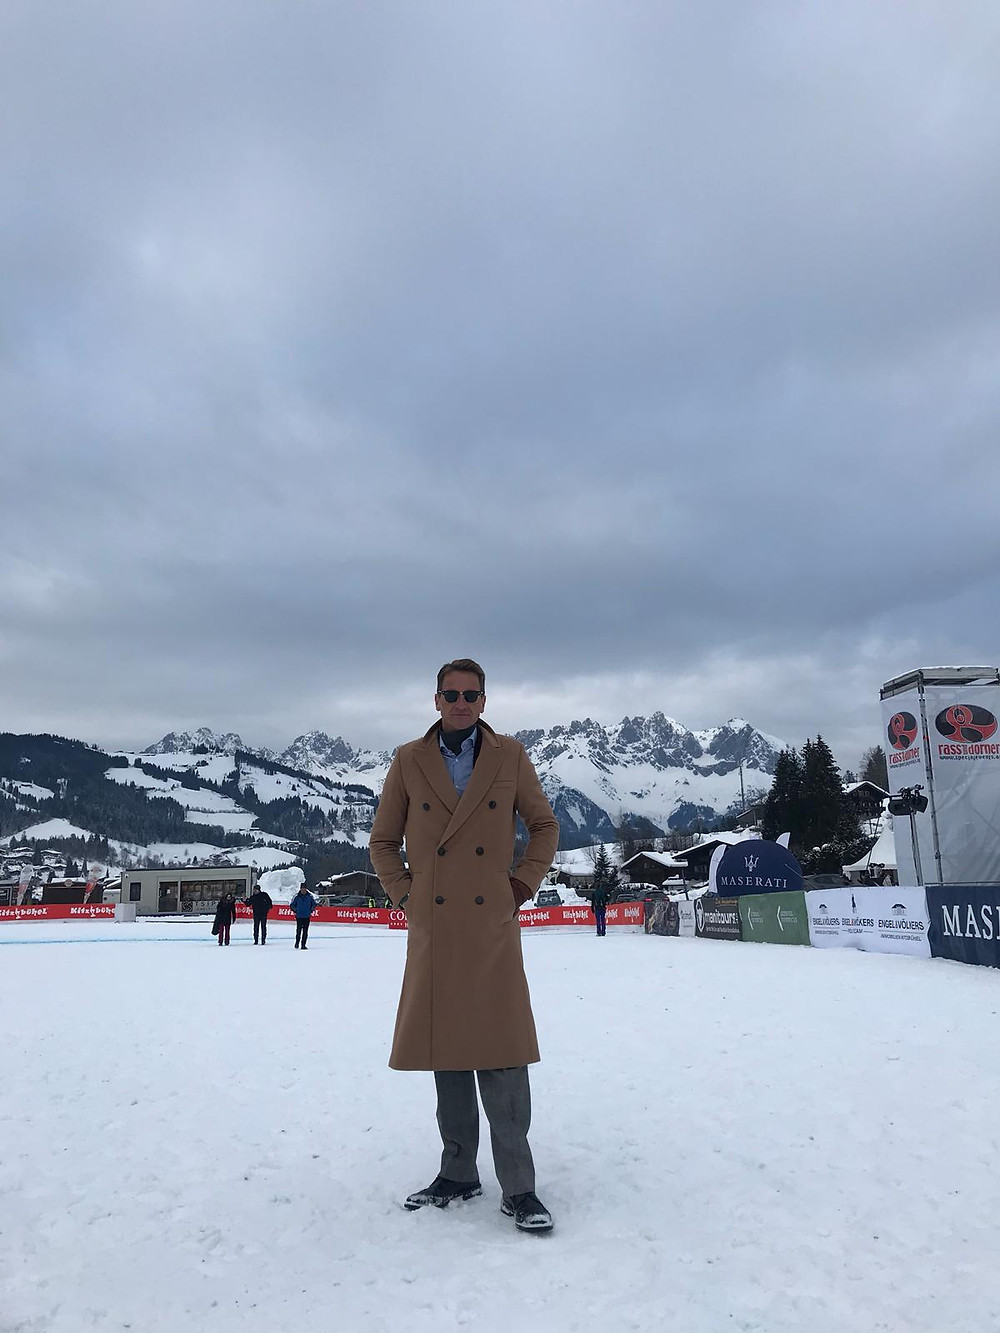 Dr King at SnowPolo Kitzbühel January 2019